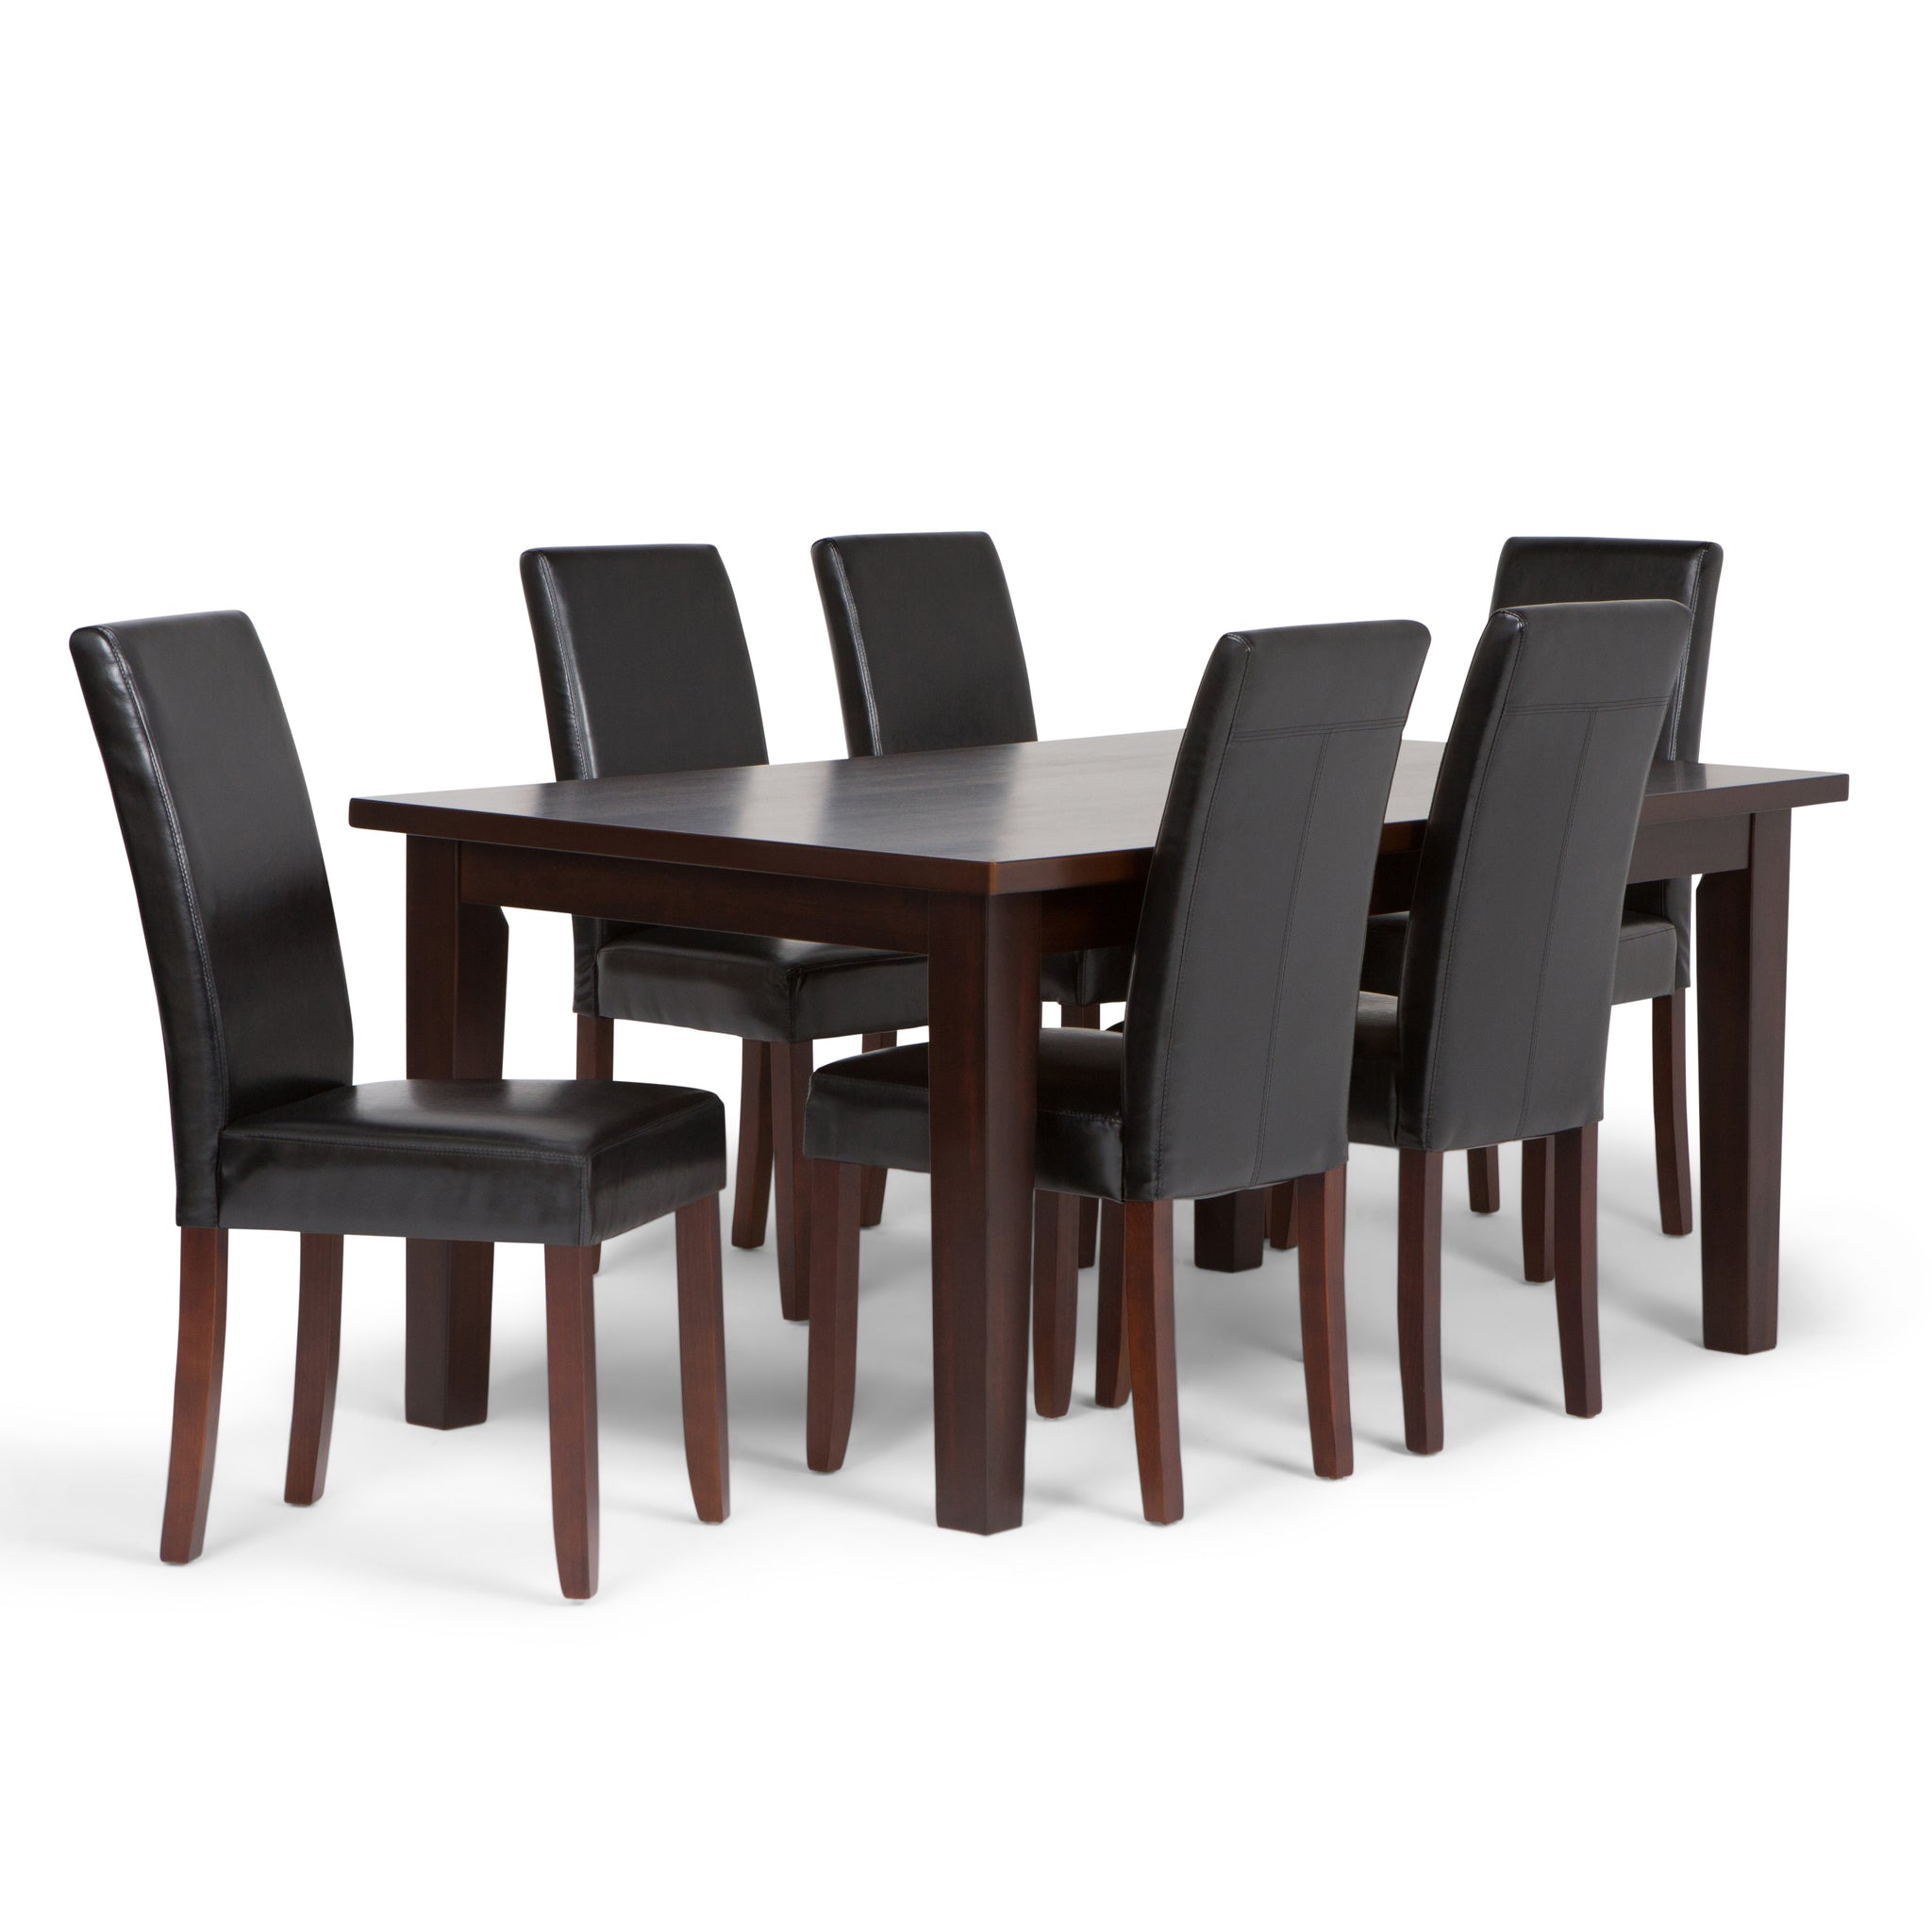 Acadian 7 piece Dining Set in Midnight Black Faux Leather